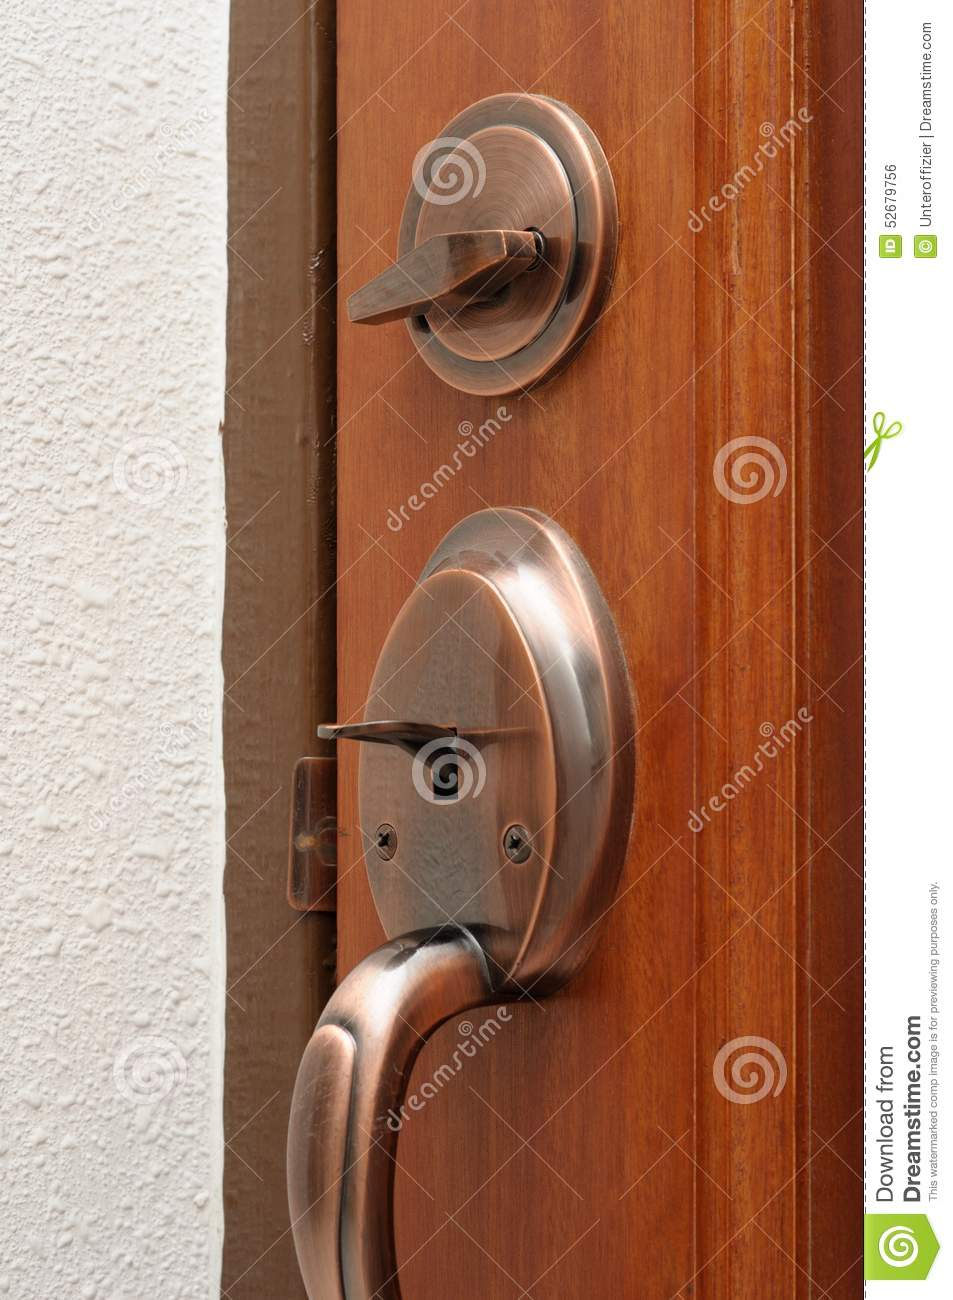 Door Latch And Lock Stock Photo Image Of Main Renovate